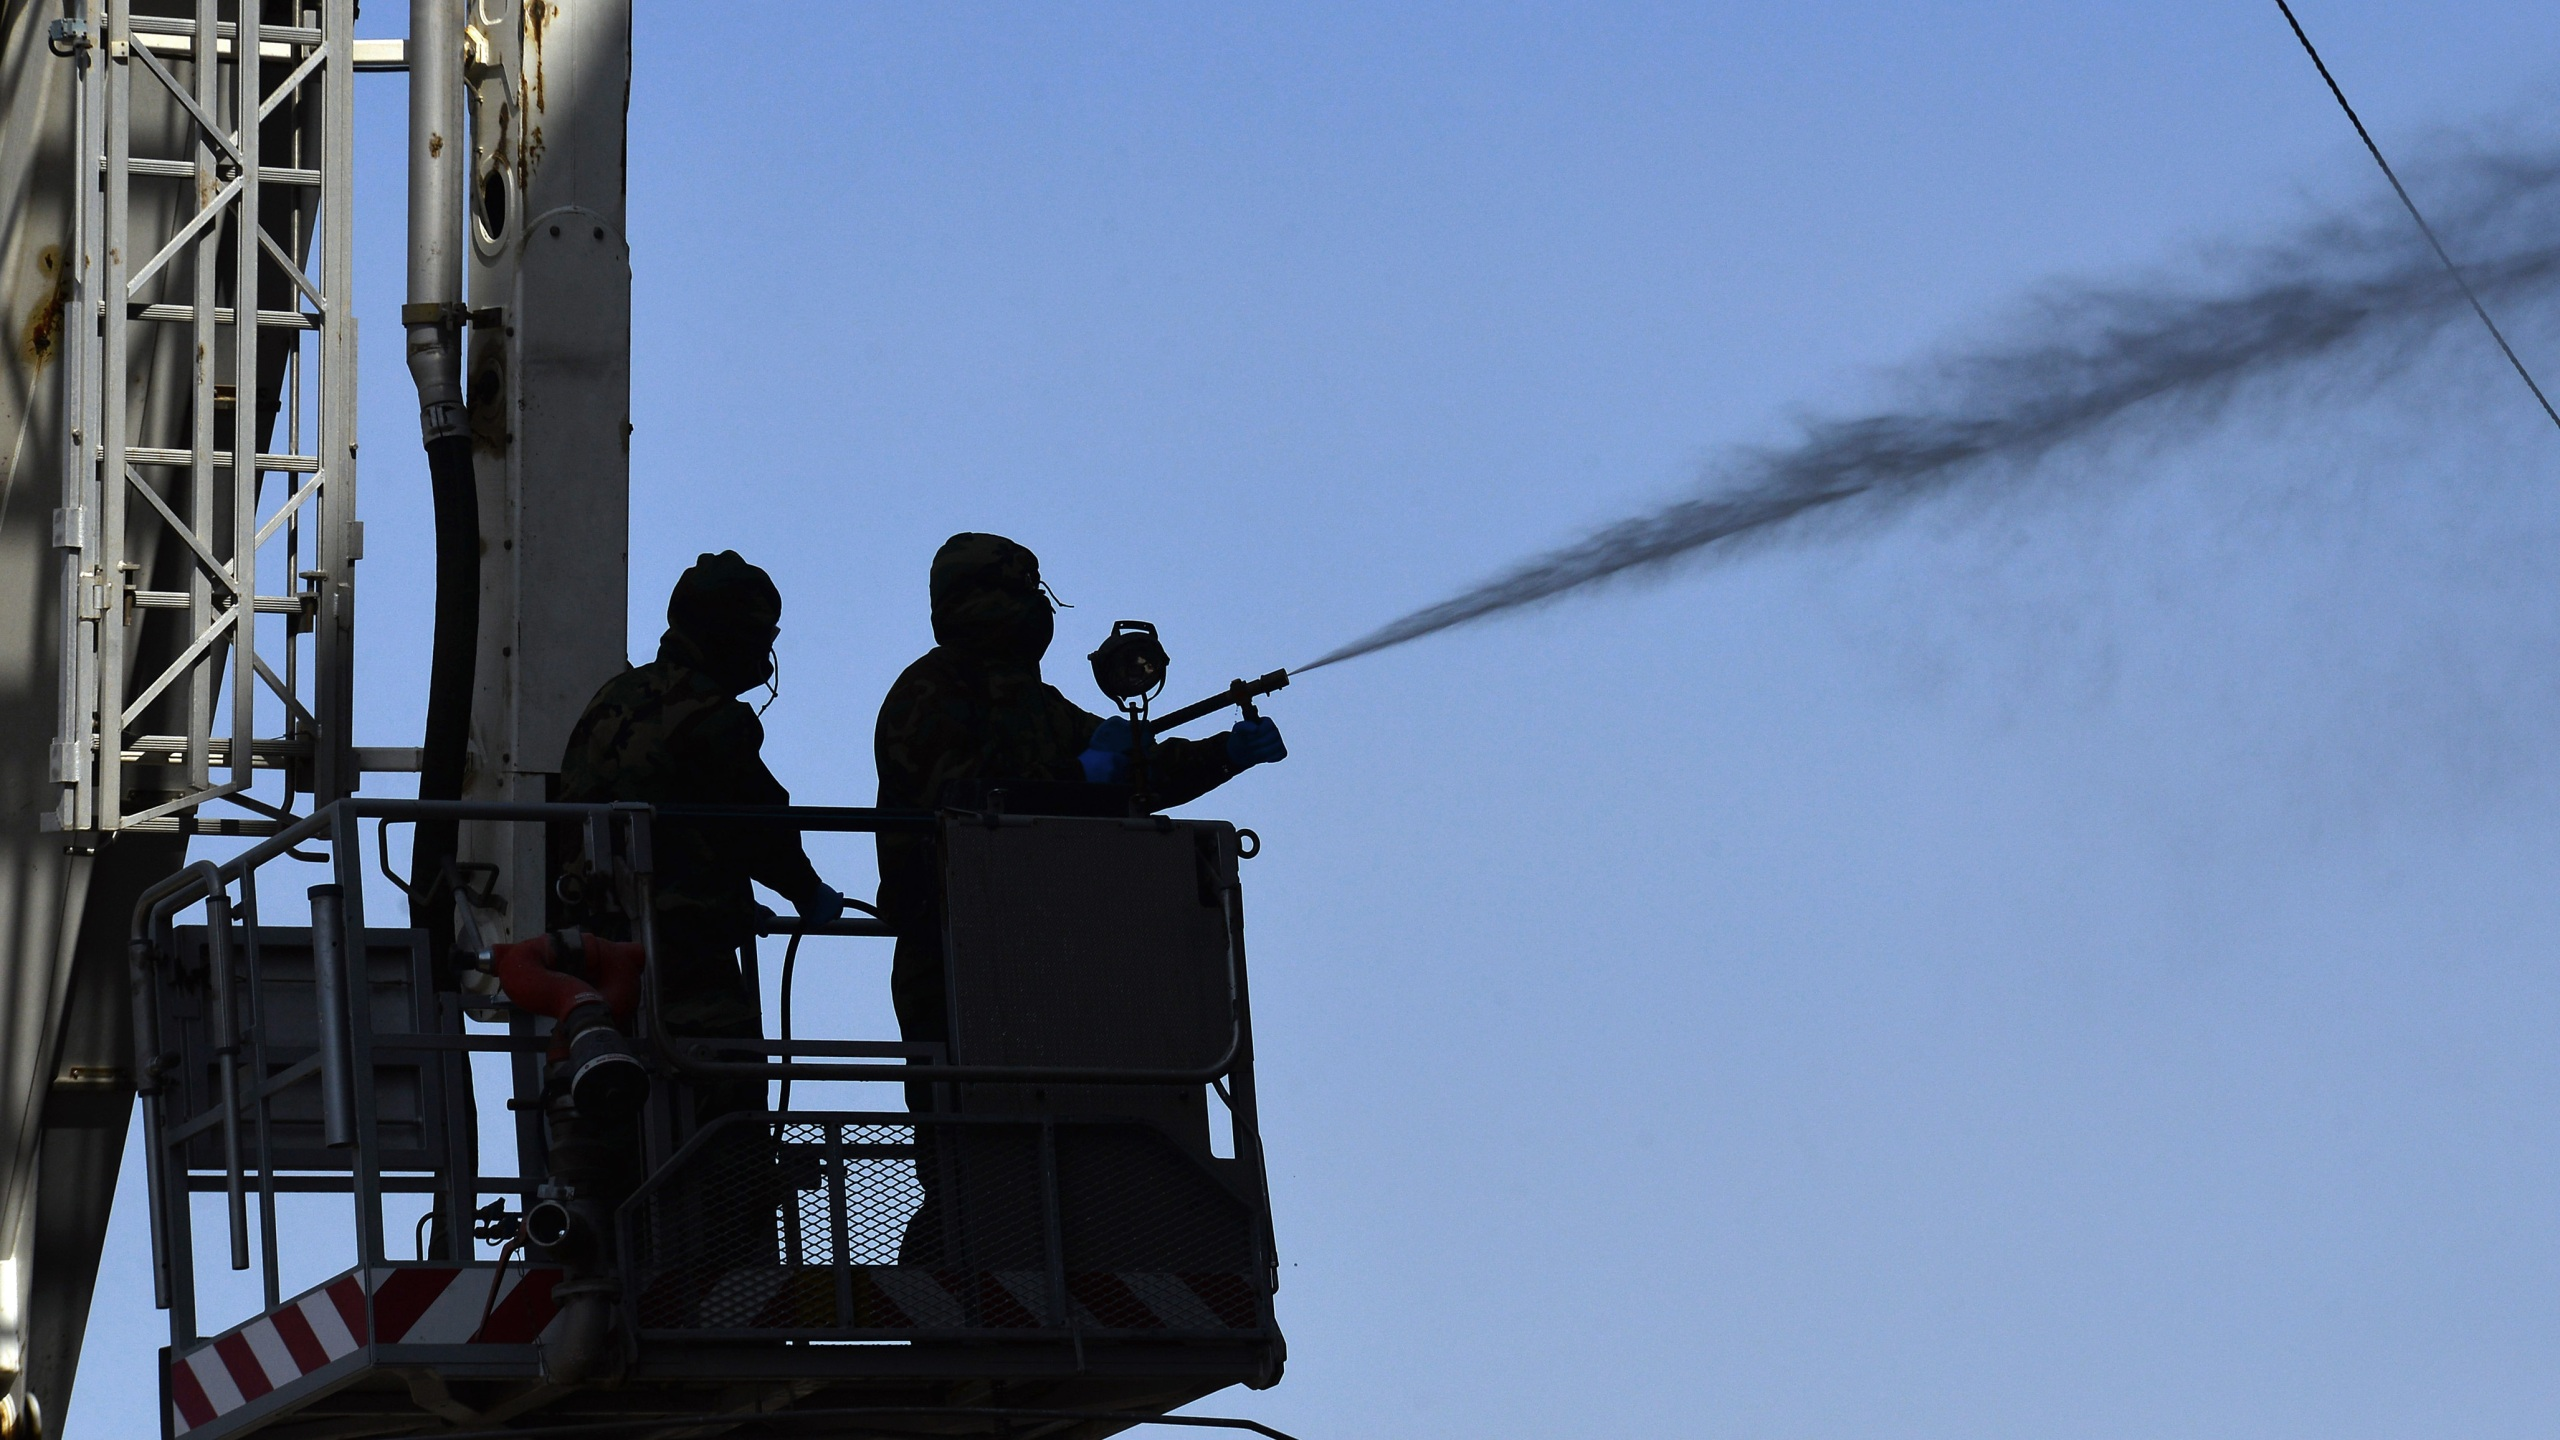 Members of the Iraqi civil defense spray disinfectant on and around a building where Islamic students are quarantined for having had contact with Iraq's first confirmed case of novel coronavirus infection, in the central holy city of Najaf, on Feb. 26, 2020. (Haidar HAMDANI / AFP) (Photo by HAIDAR HAMDANI/AFP via Getty Images)